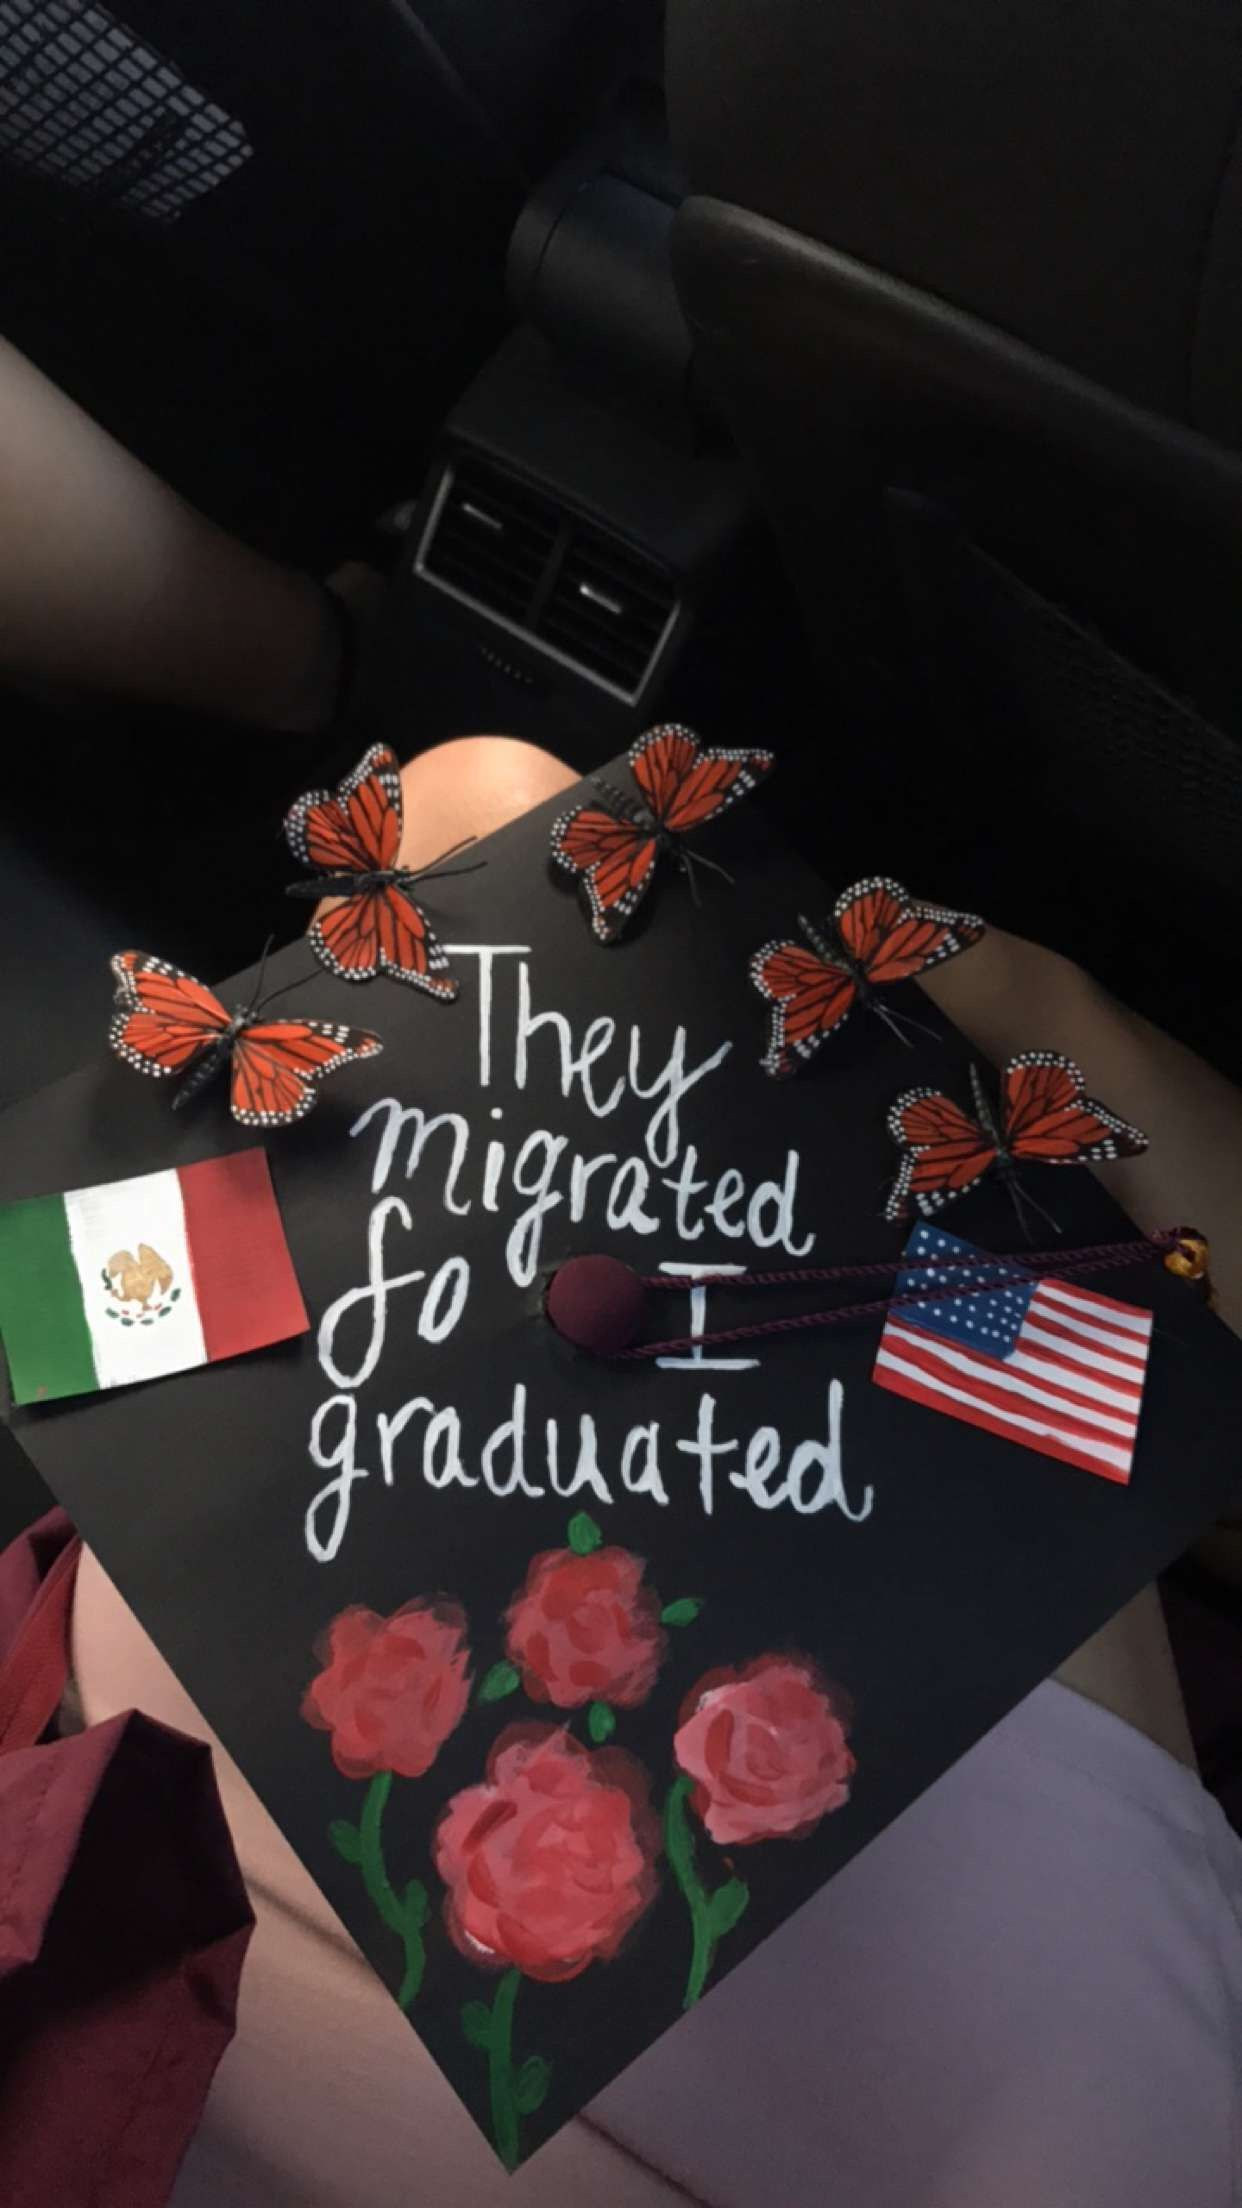 Marvellous How I Ended Up Decorating My How I Ended Up Decorating My Decorated Graduation Cap Backwards Decorated Graduation Caps Rn